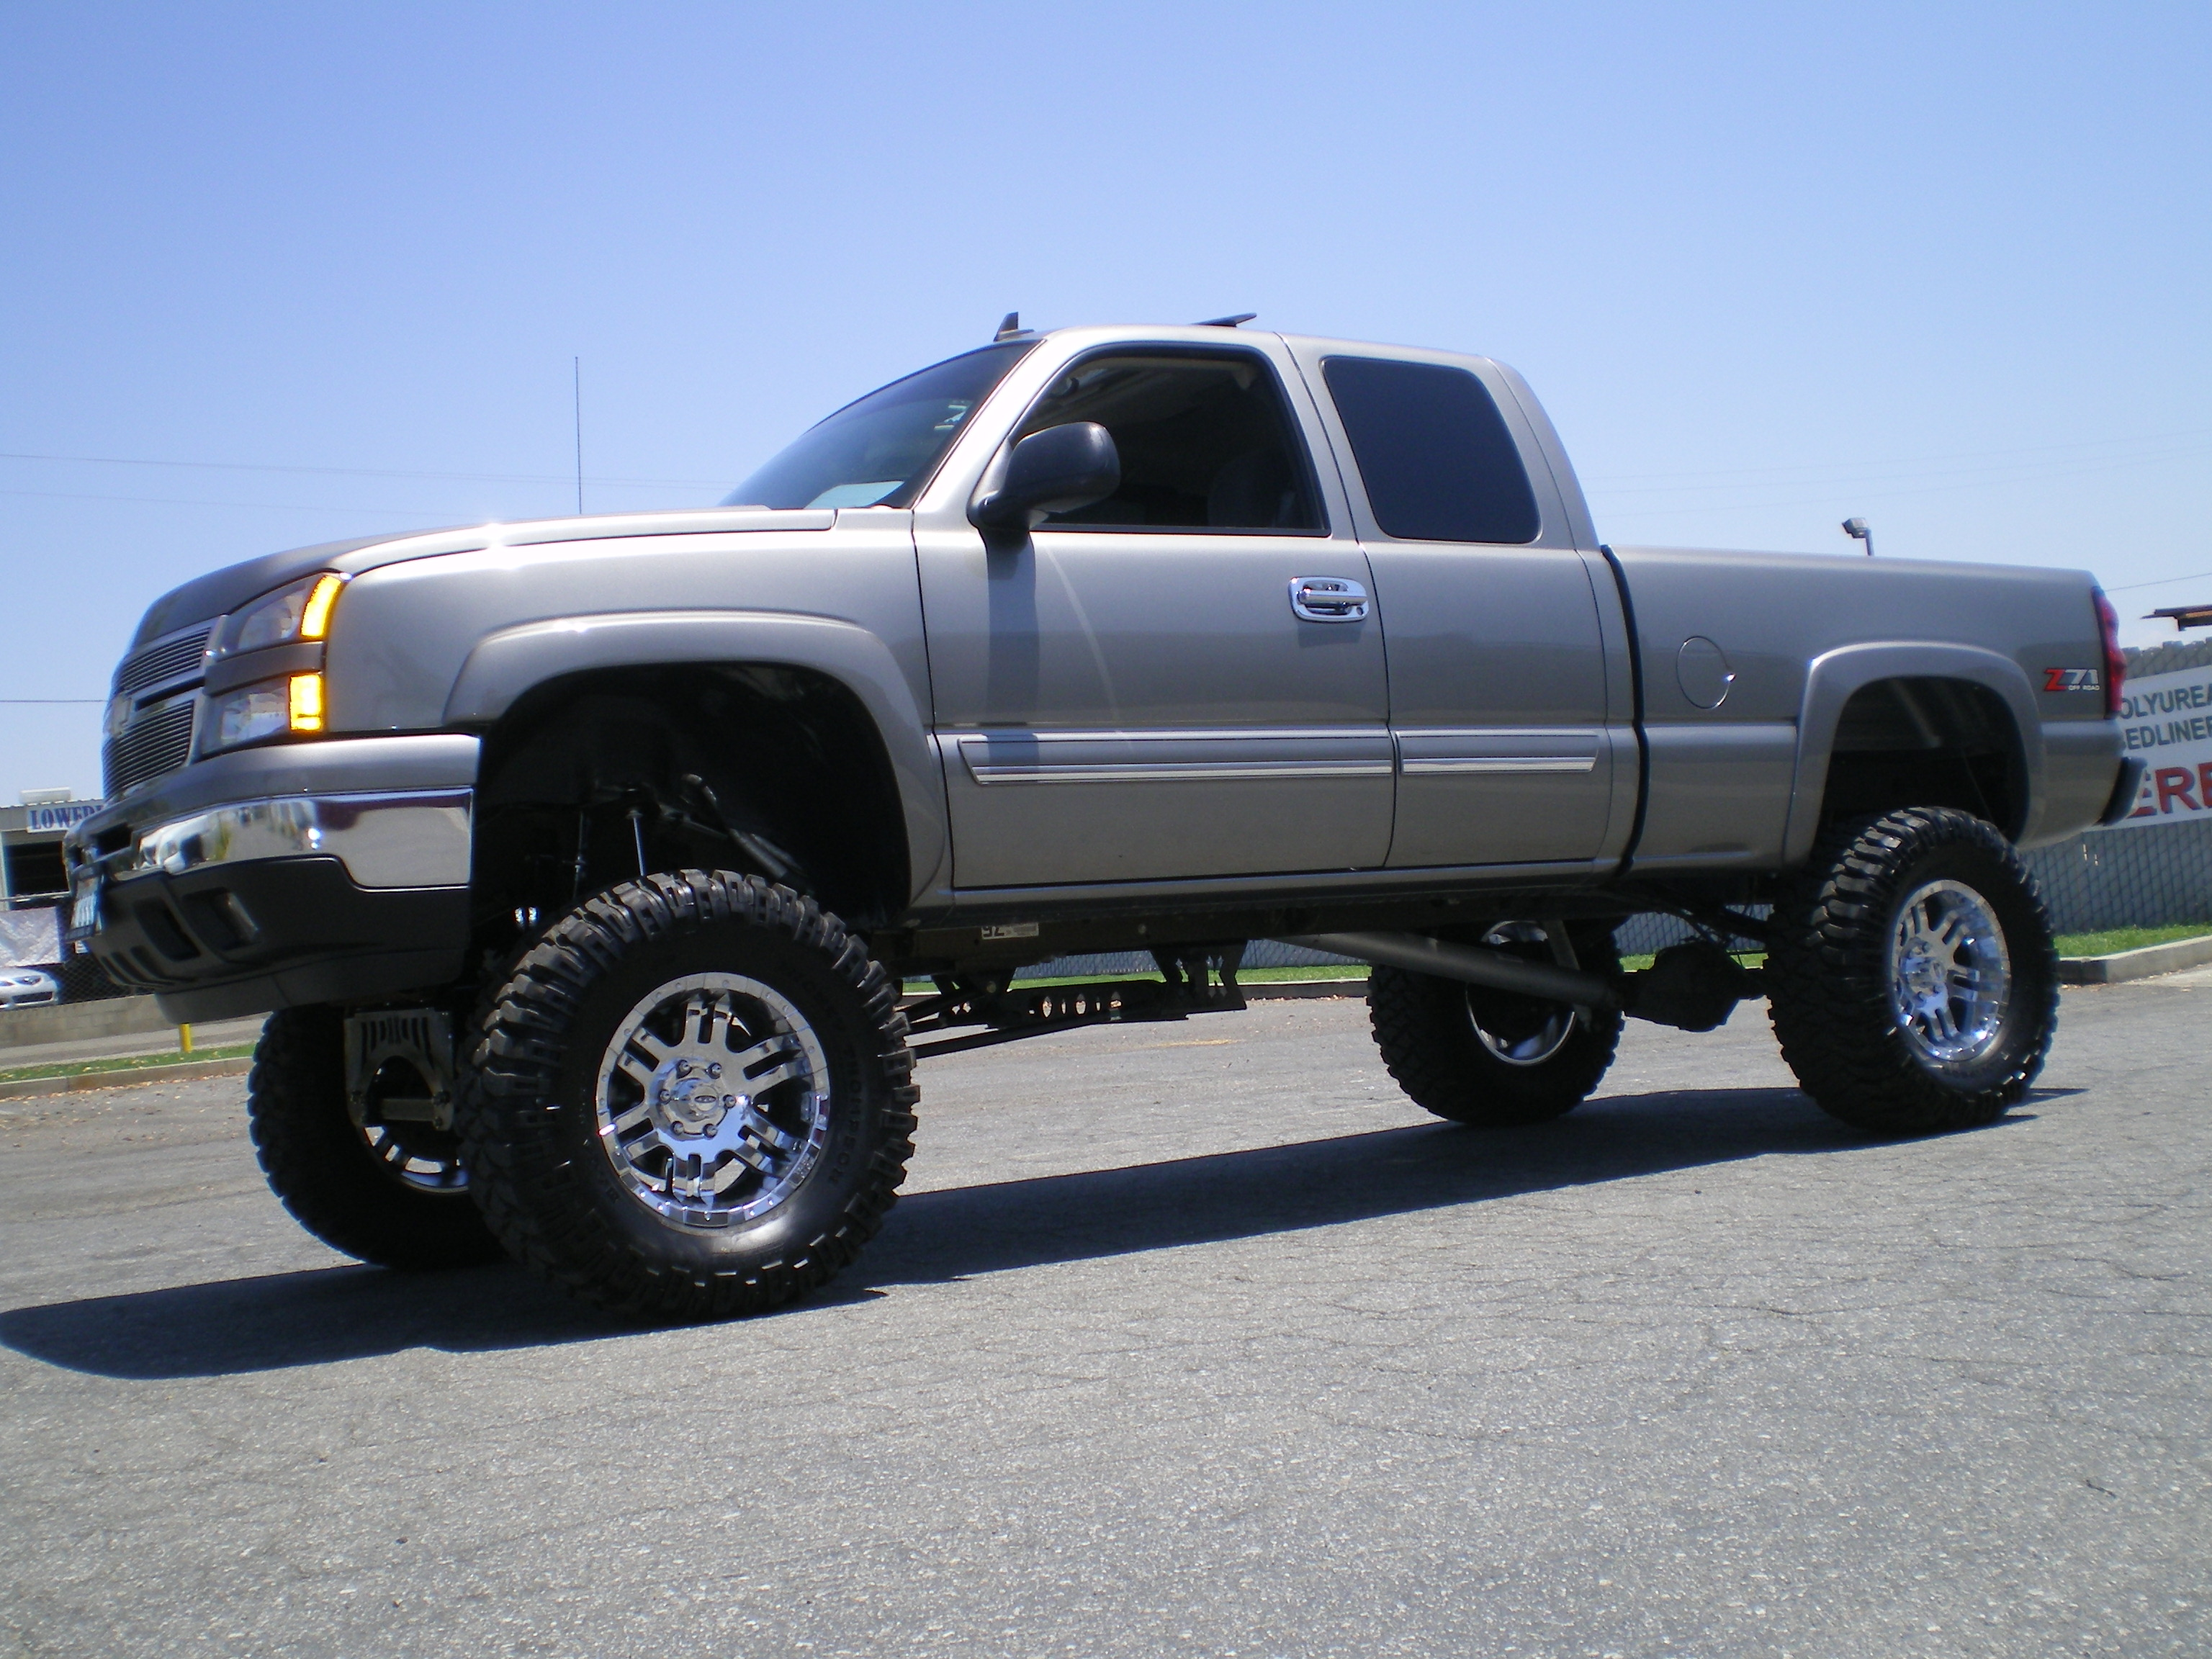 10 Inch Lift Kit For Chevy Silverado Chevy 10 Inch Lift Kit